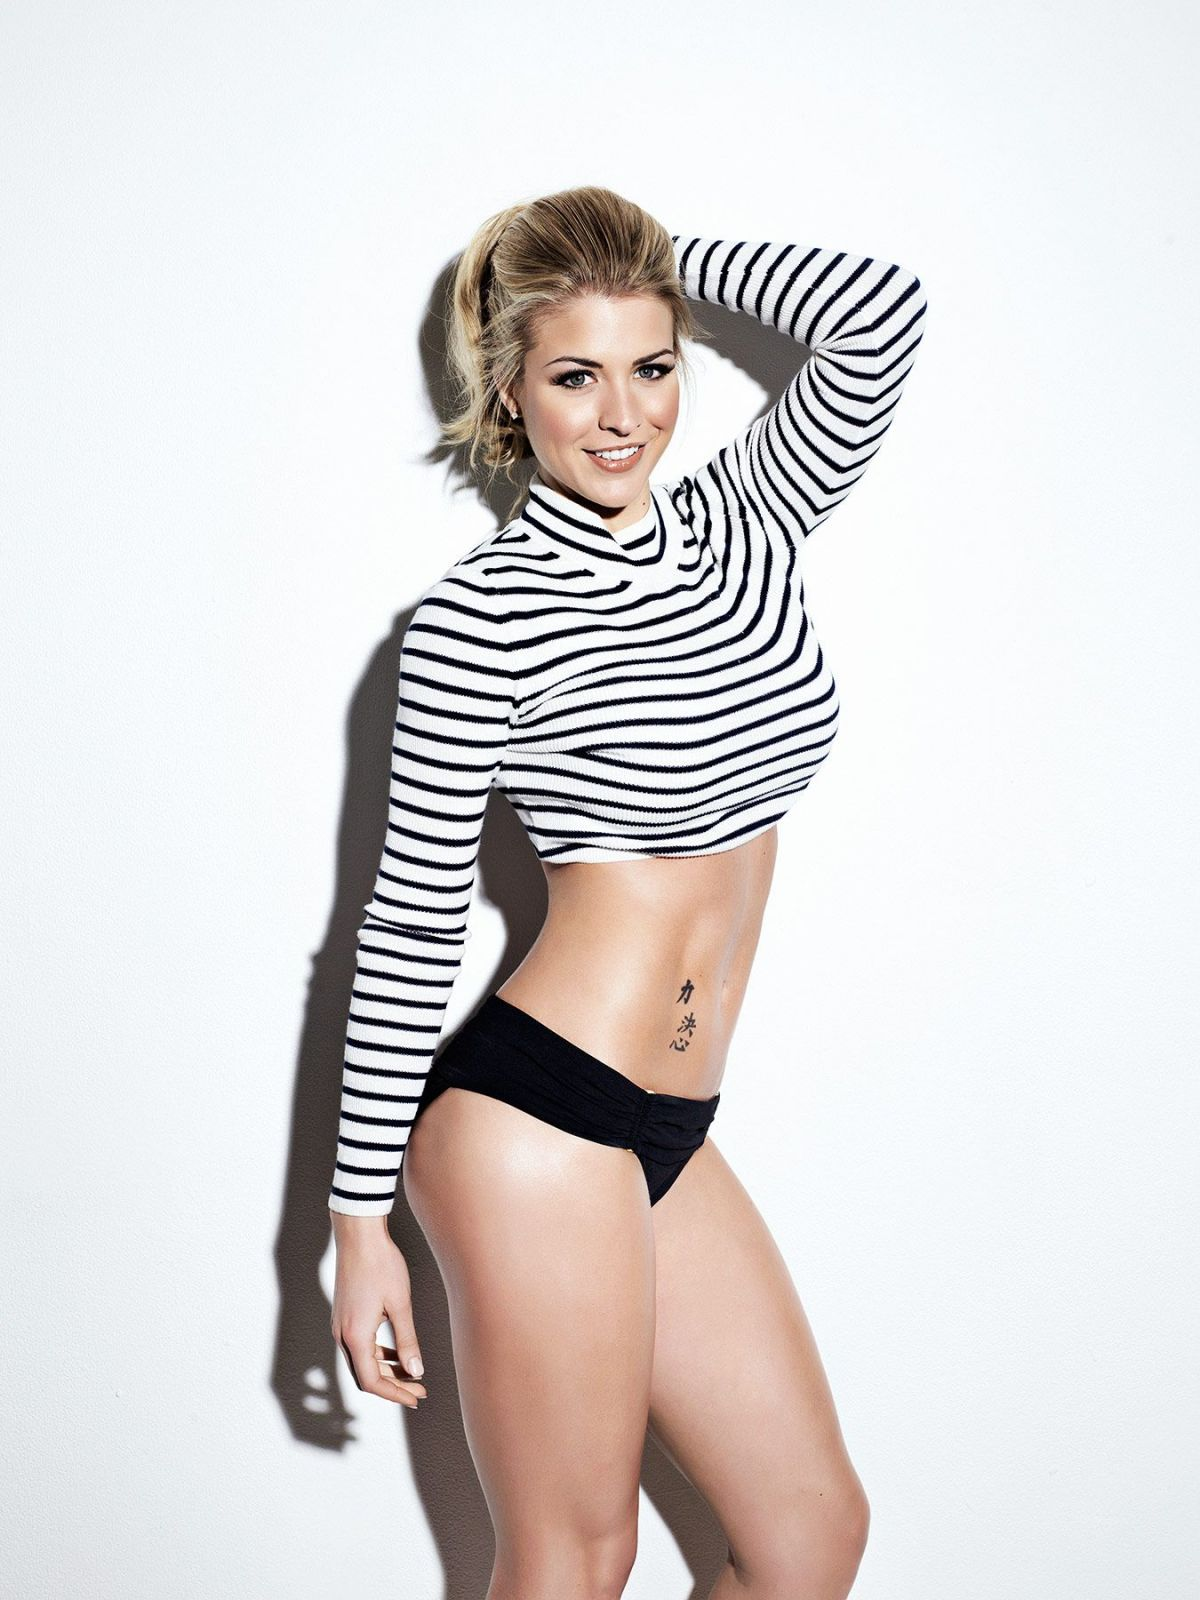 gemma atkinson wallpaper hd